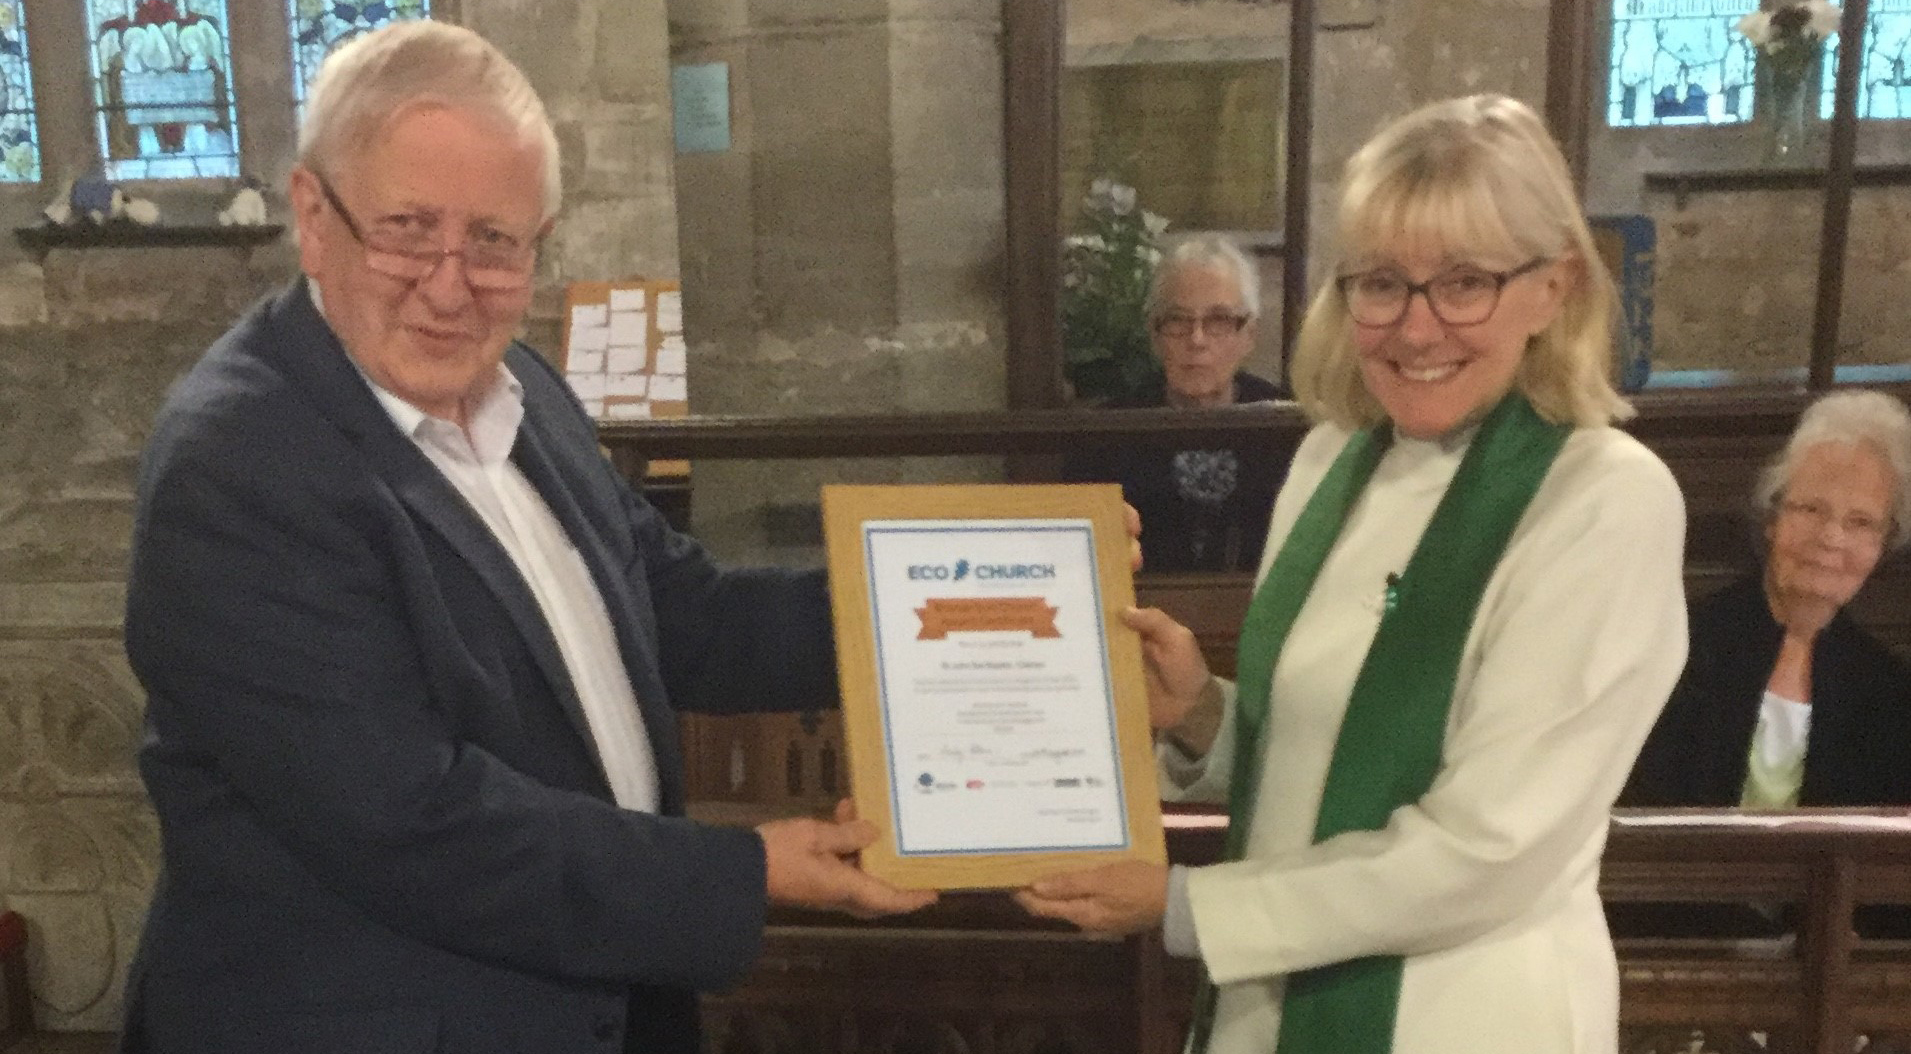 Open Claines Church Awarded Eco Church Bronze Certificate